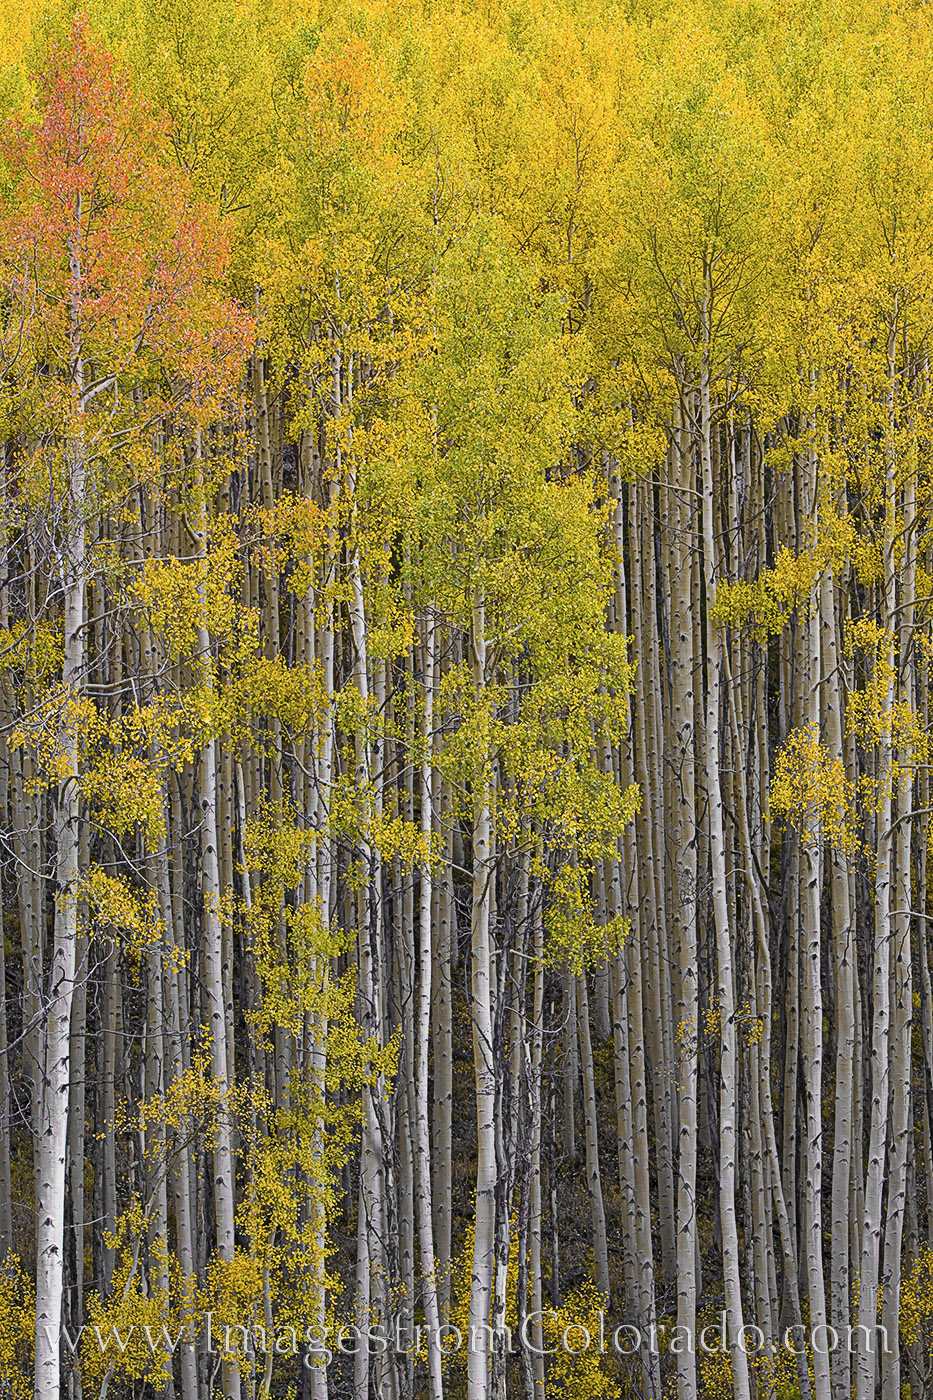 aspen trees, colorado aspen, aspen photos, colorado images, colorado aspen trees, colorado foilage, aspen, gold, yellow, fall, autumn, photo